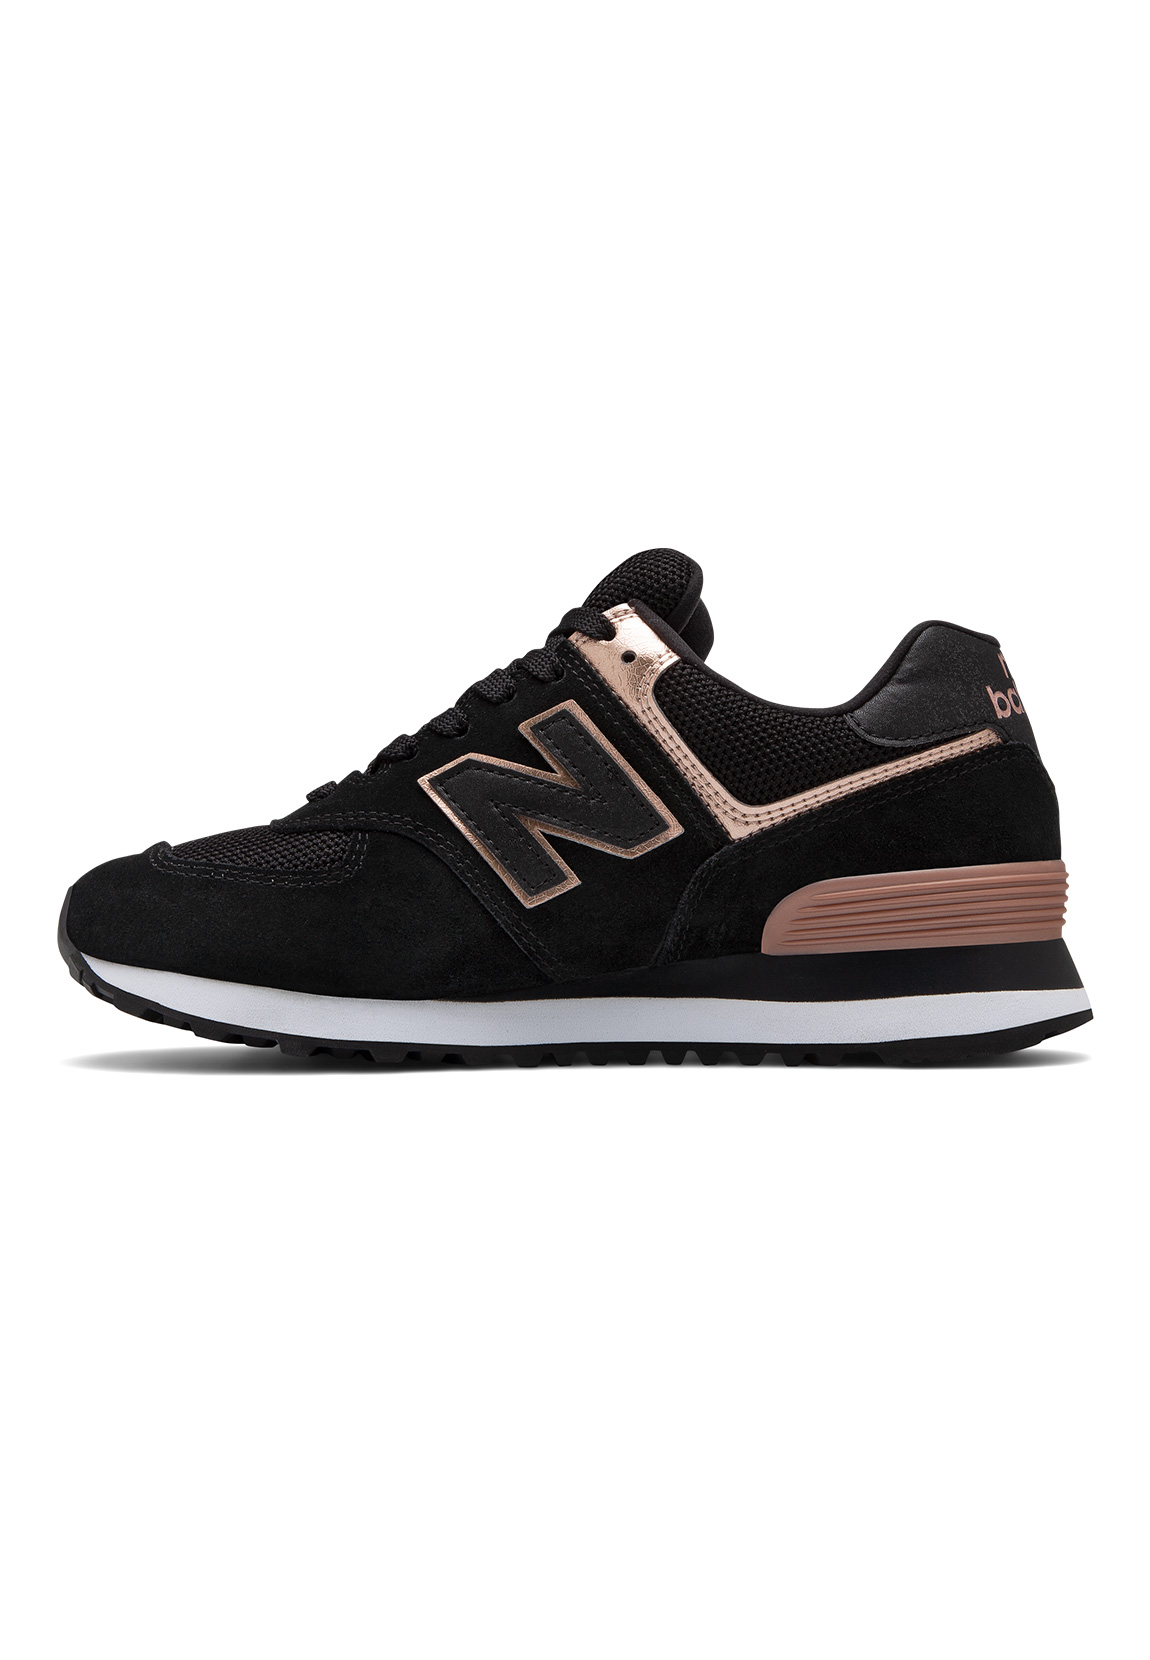 new balance sneaker damen wl574mea schwarz black schuhe damen. Black Bedroom Furniture Sets. Home Design Ideas